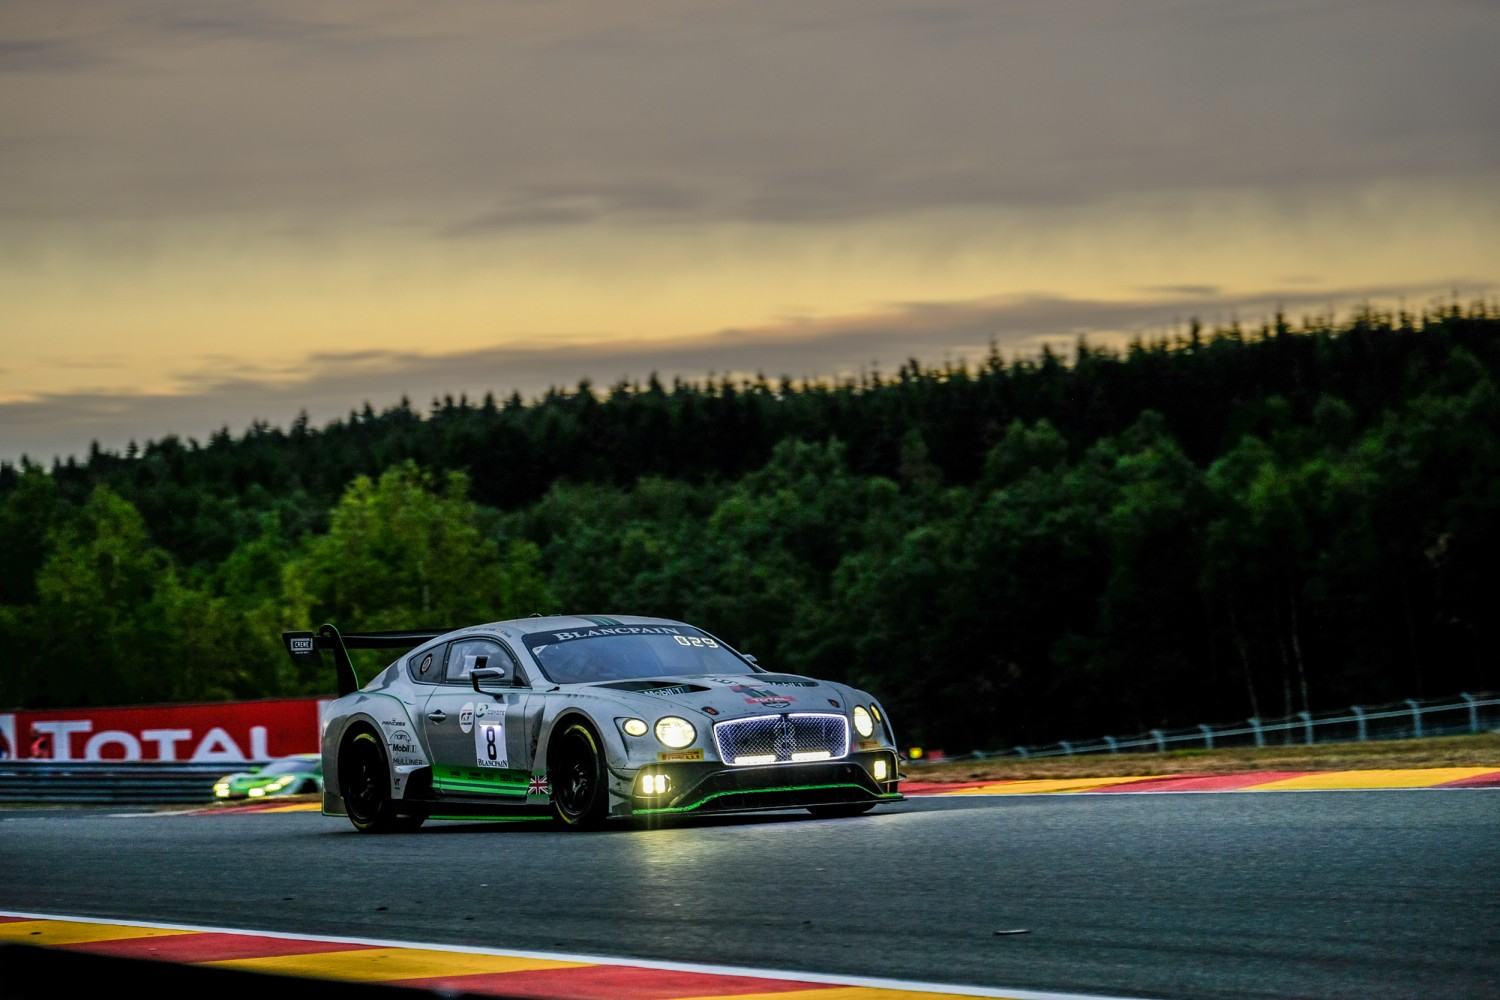 #8 Bentley Team M-Sport GBR Bentley Continental GT3 - - - Vincent Abril MCO Andy Soucek ESP Maxime Soulet BEL, Morning, Race  | SRO / Dirk Bogaerts Photography